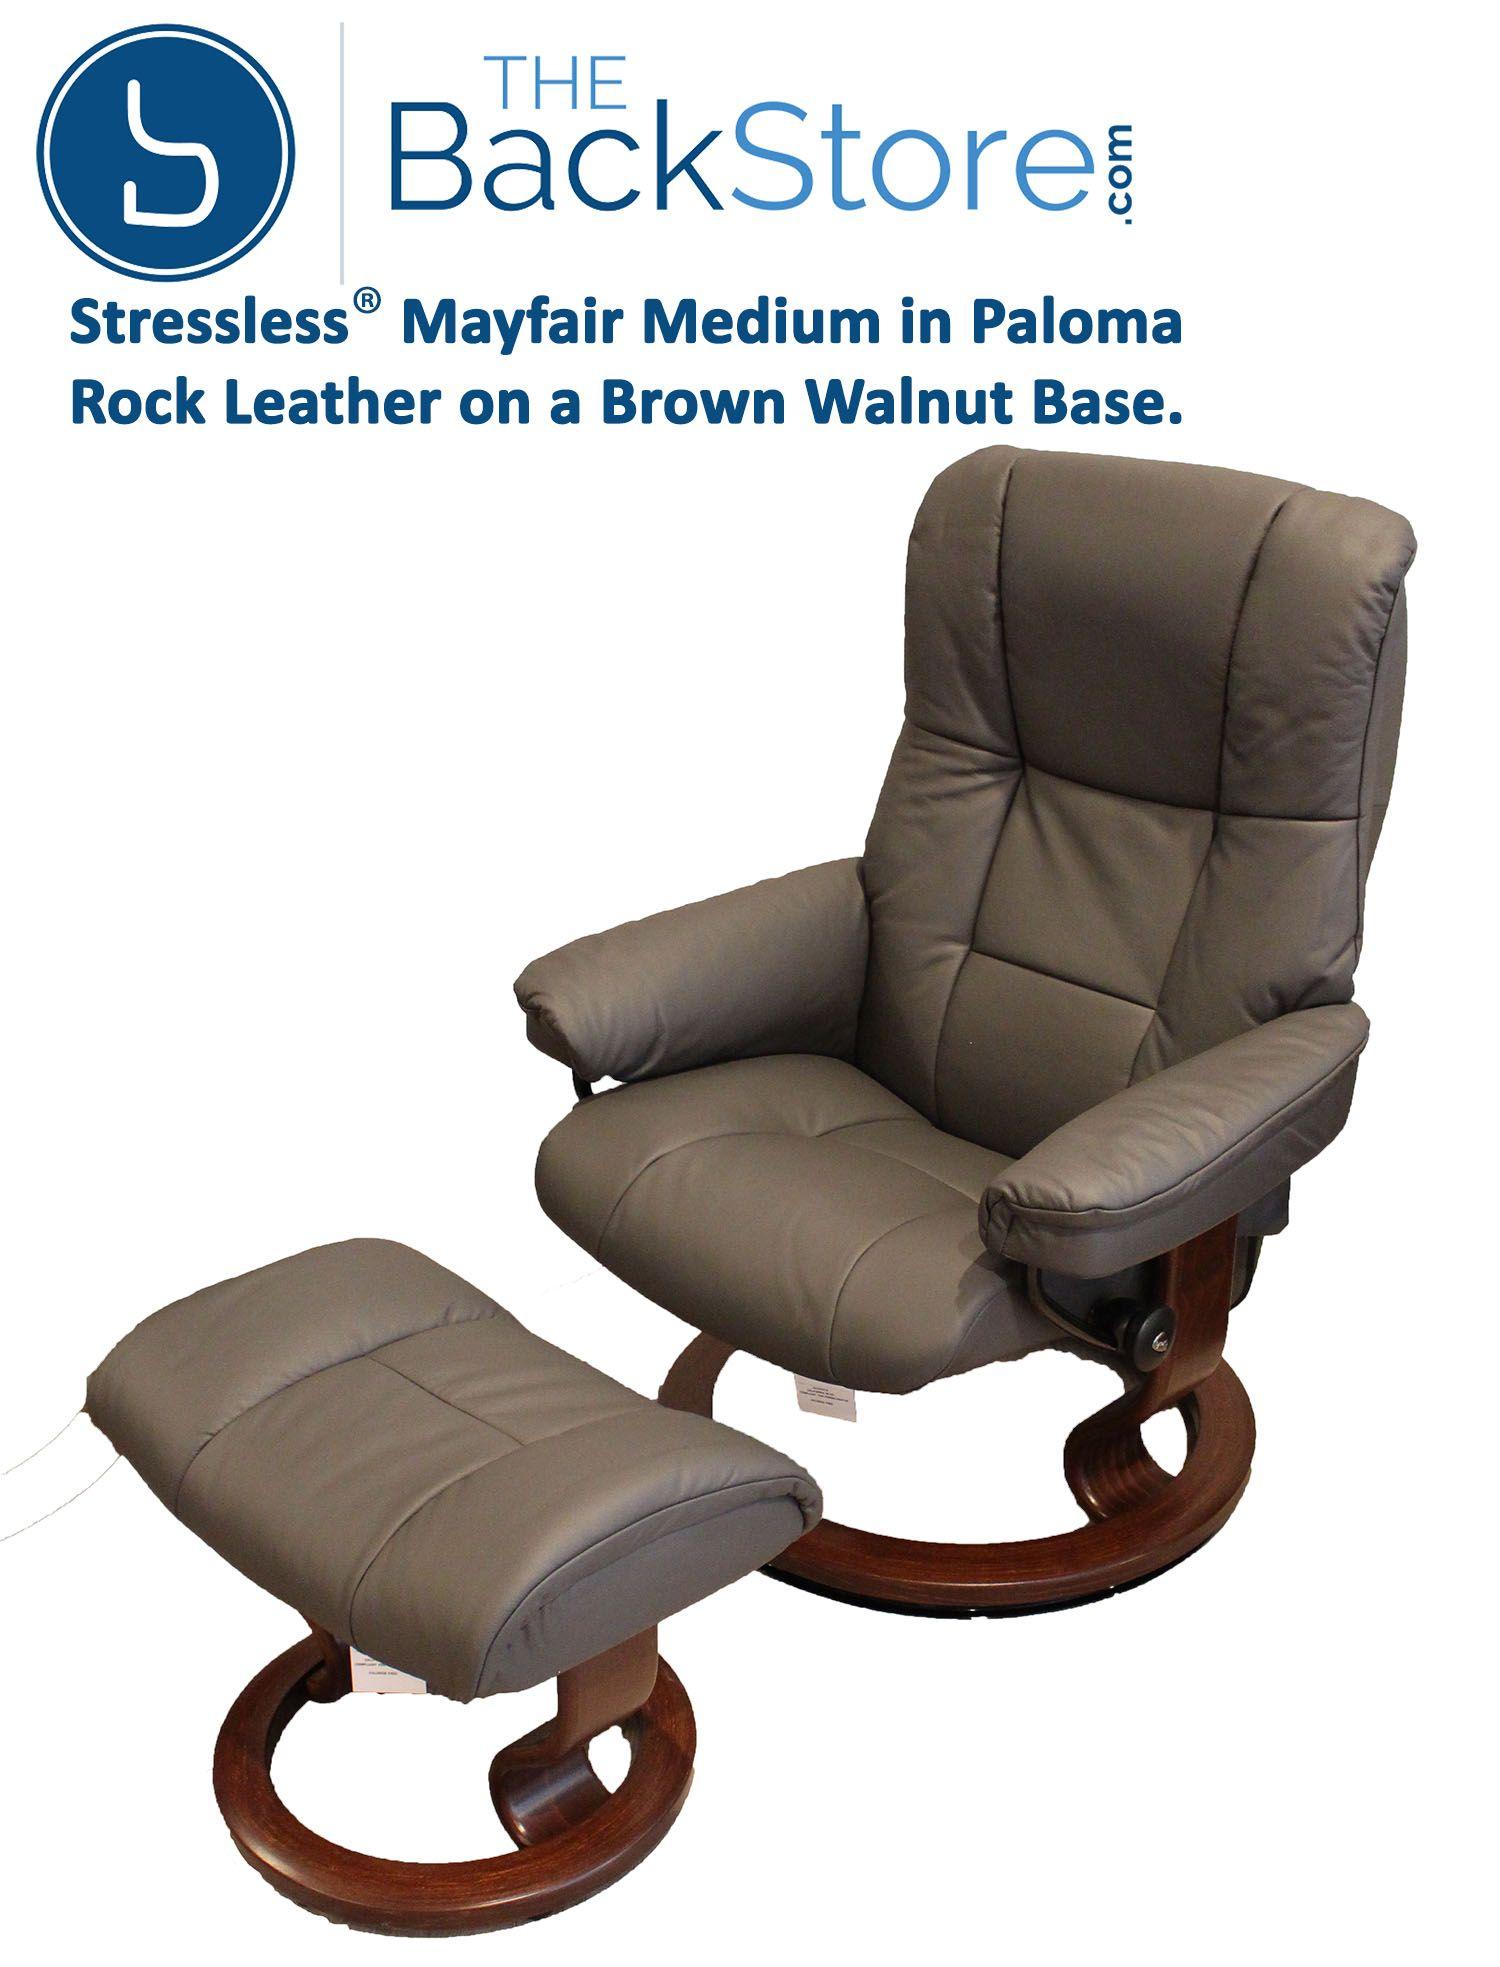 Stressless Ruby Stressless Mayfair Medium Recliner With Ottoman By Ekornes In 2019